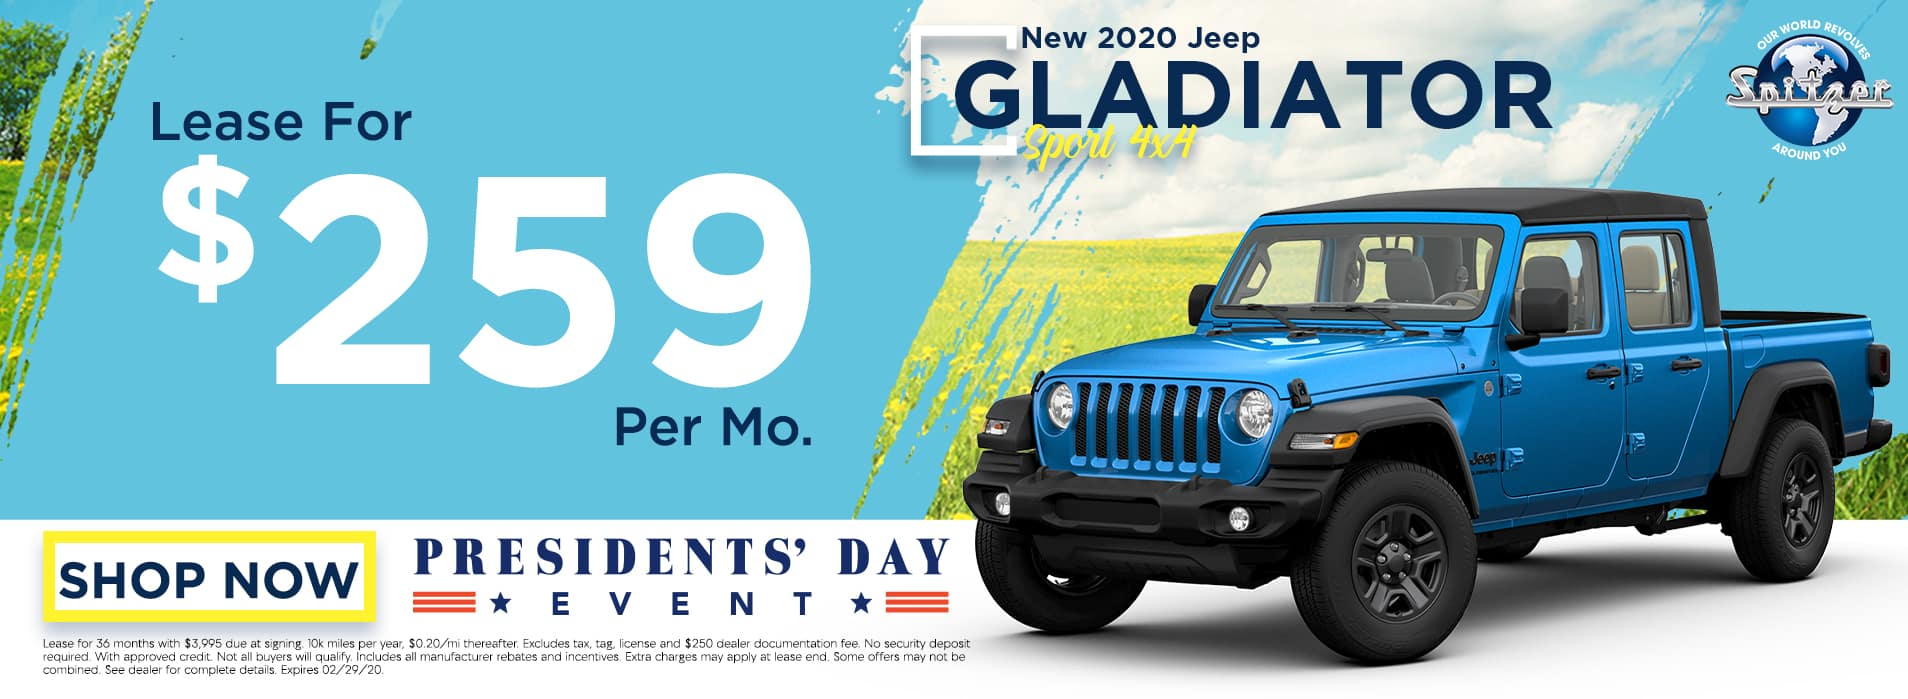 Gladiator | Lease for $259